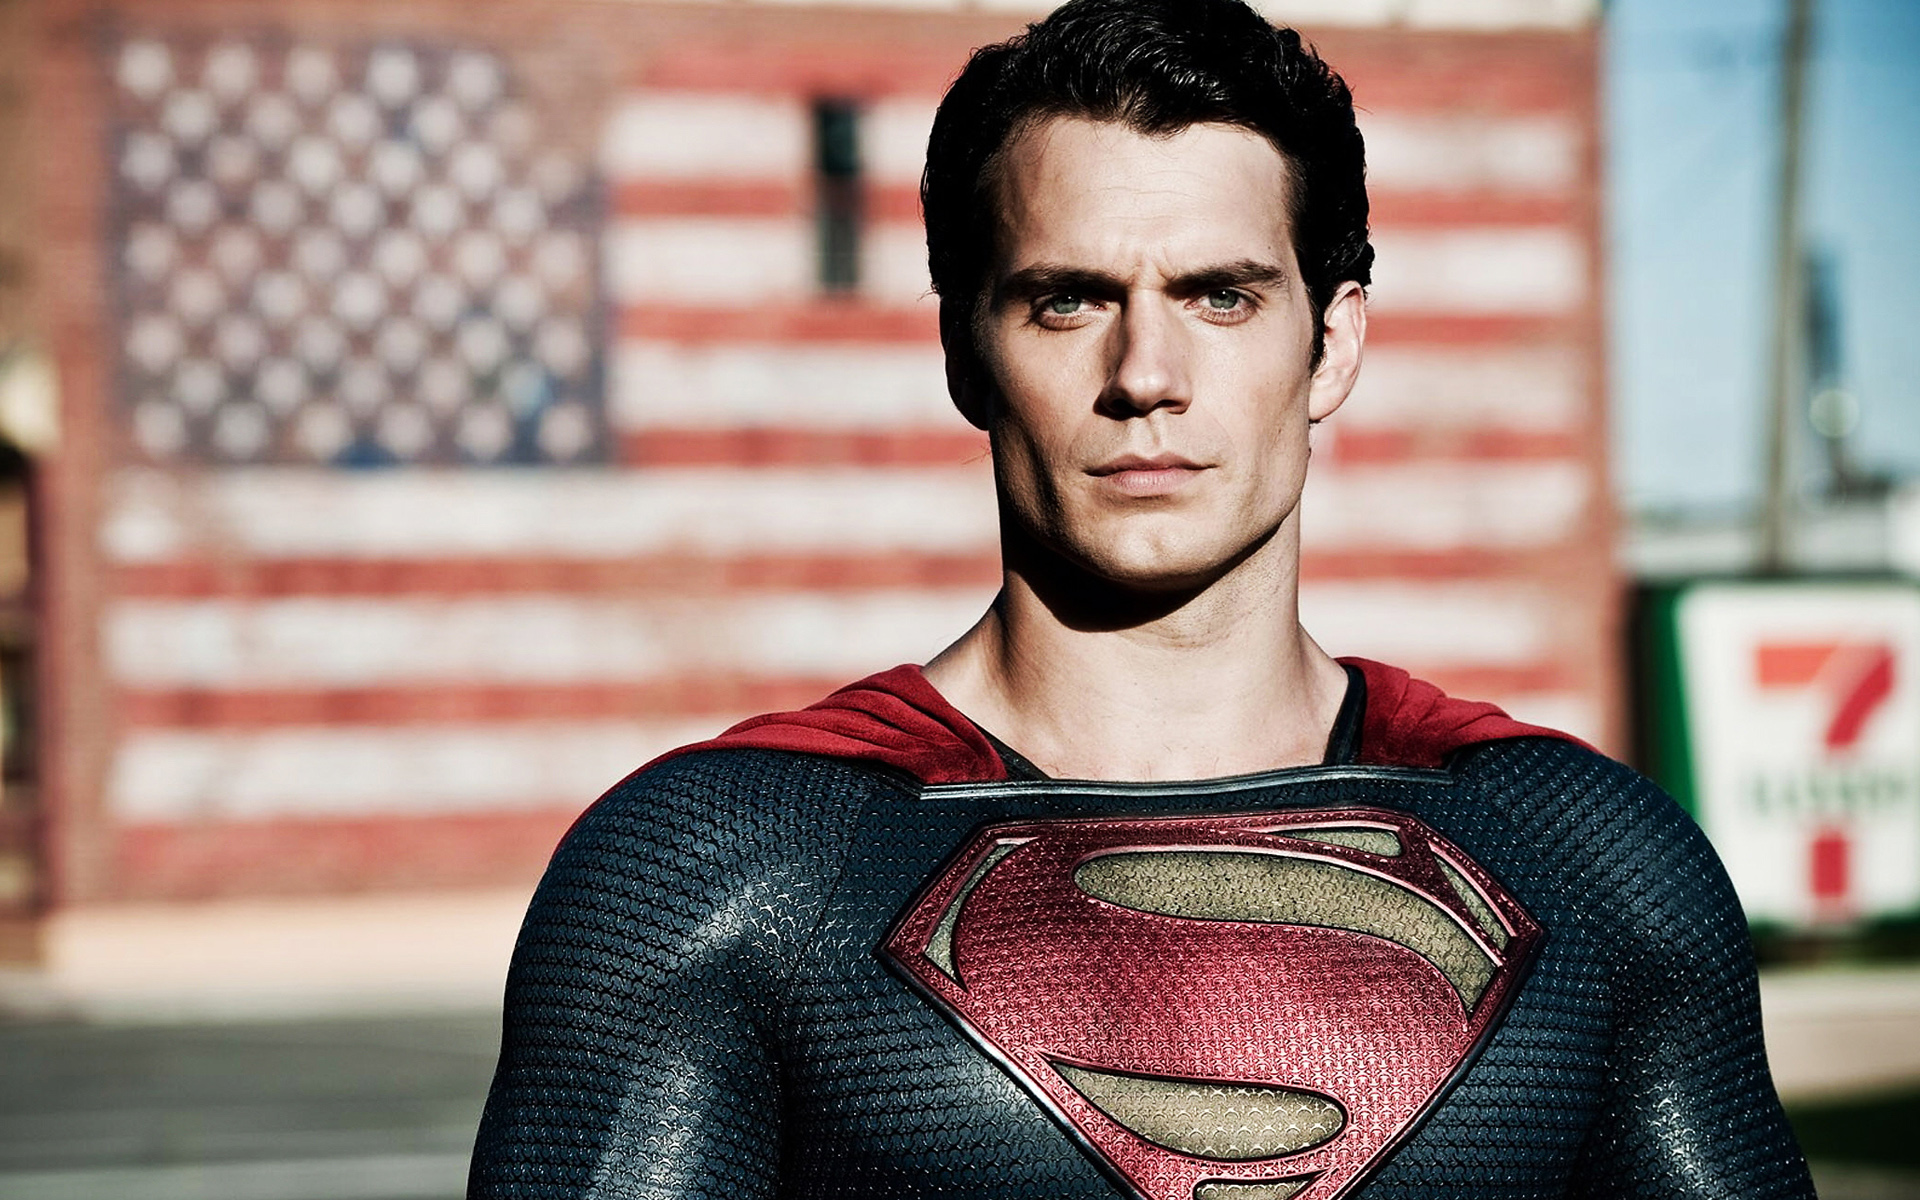 Henry-Cavill-Man-of-Steel-Wallpaper-HD